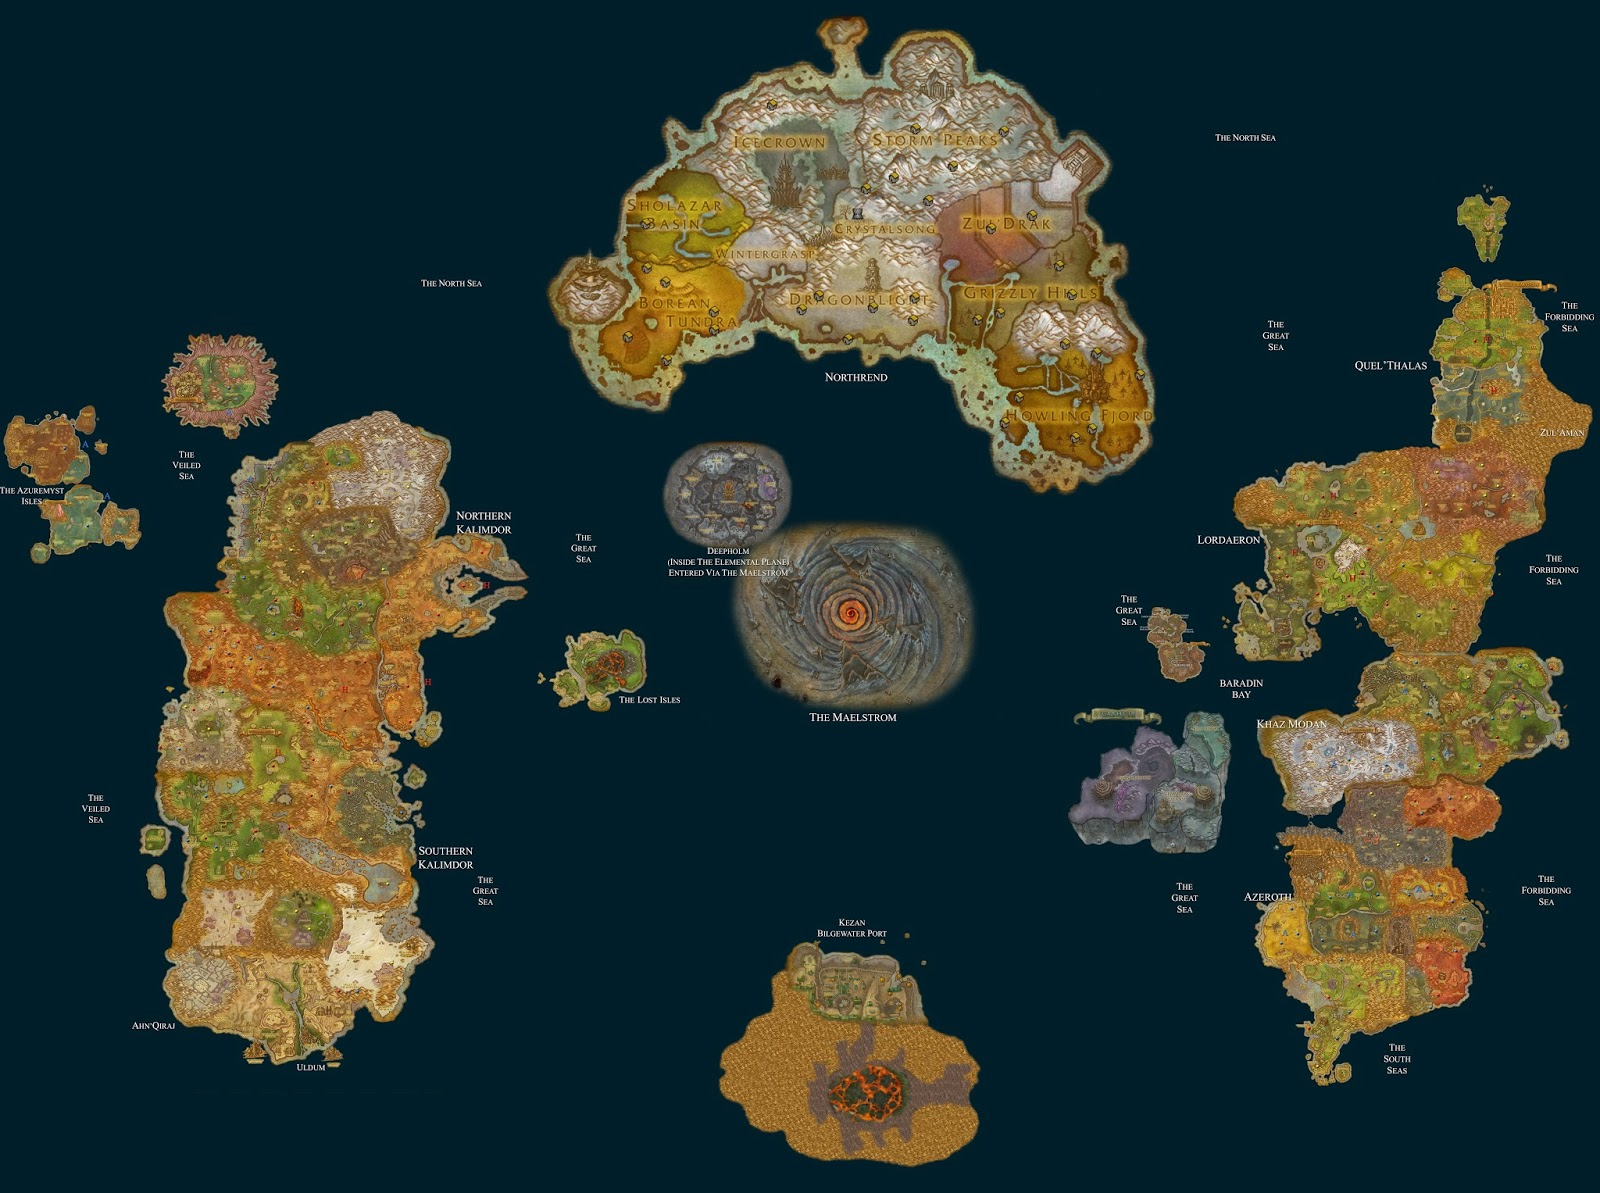 Gamer by design wow fiction has a horde bias a fantastic map of azeroth after the cataclysm complete with outpostsflight paths gumiabroncs Gallery